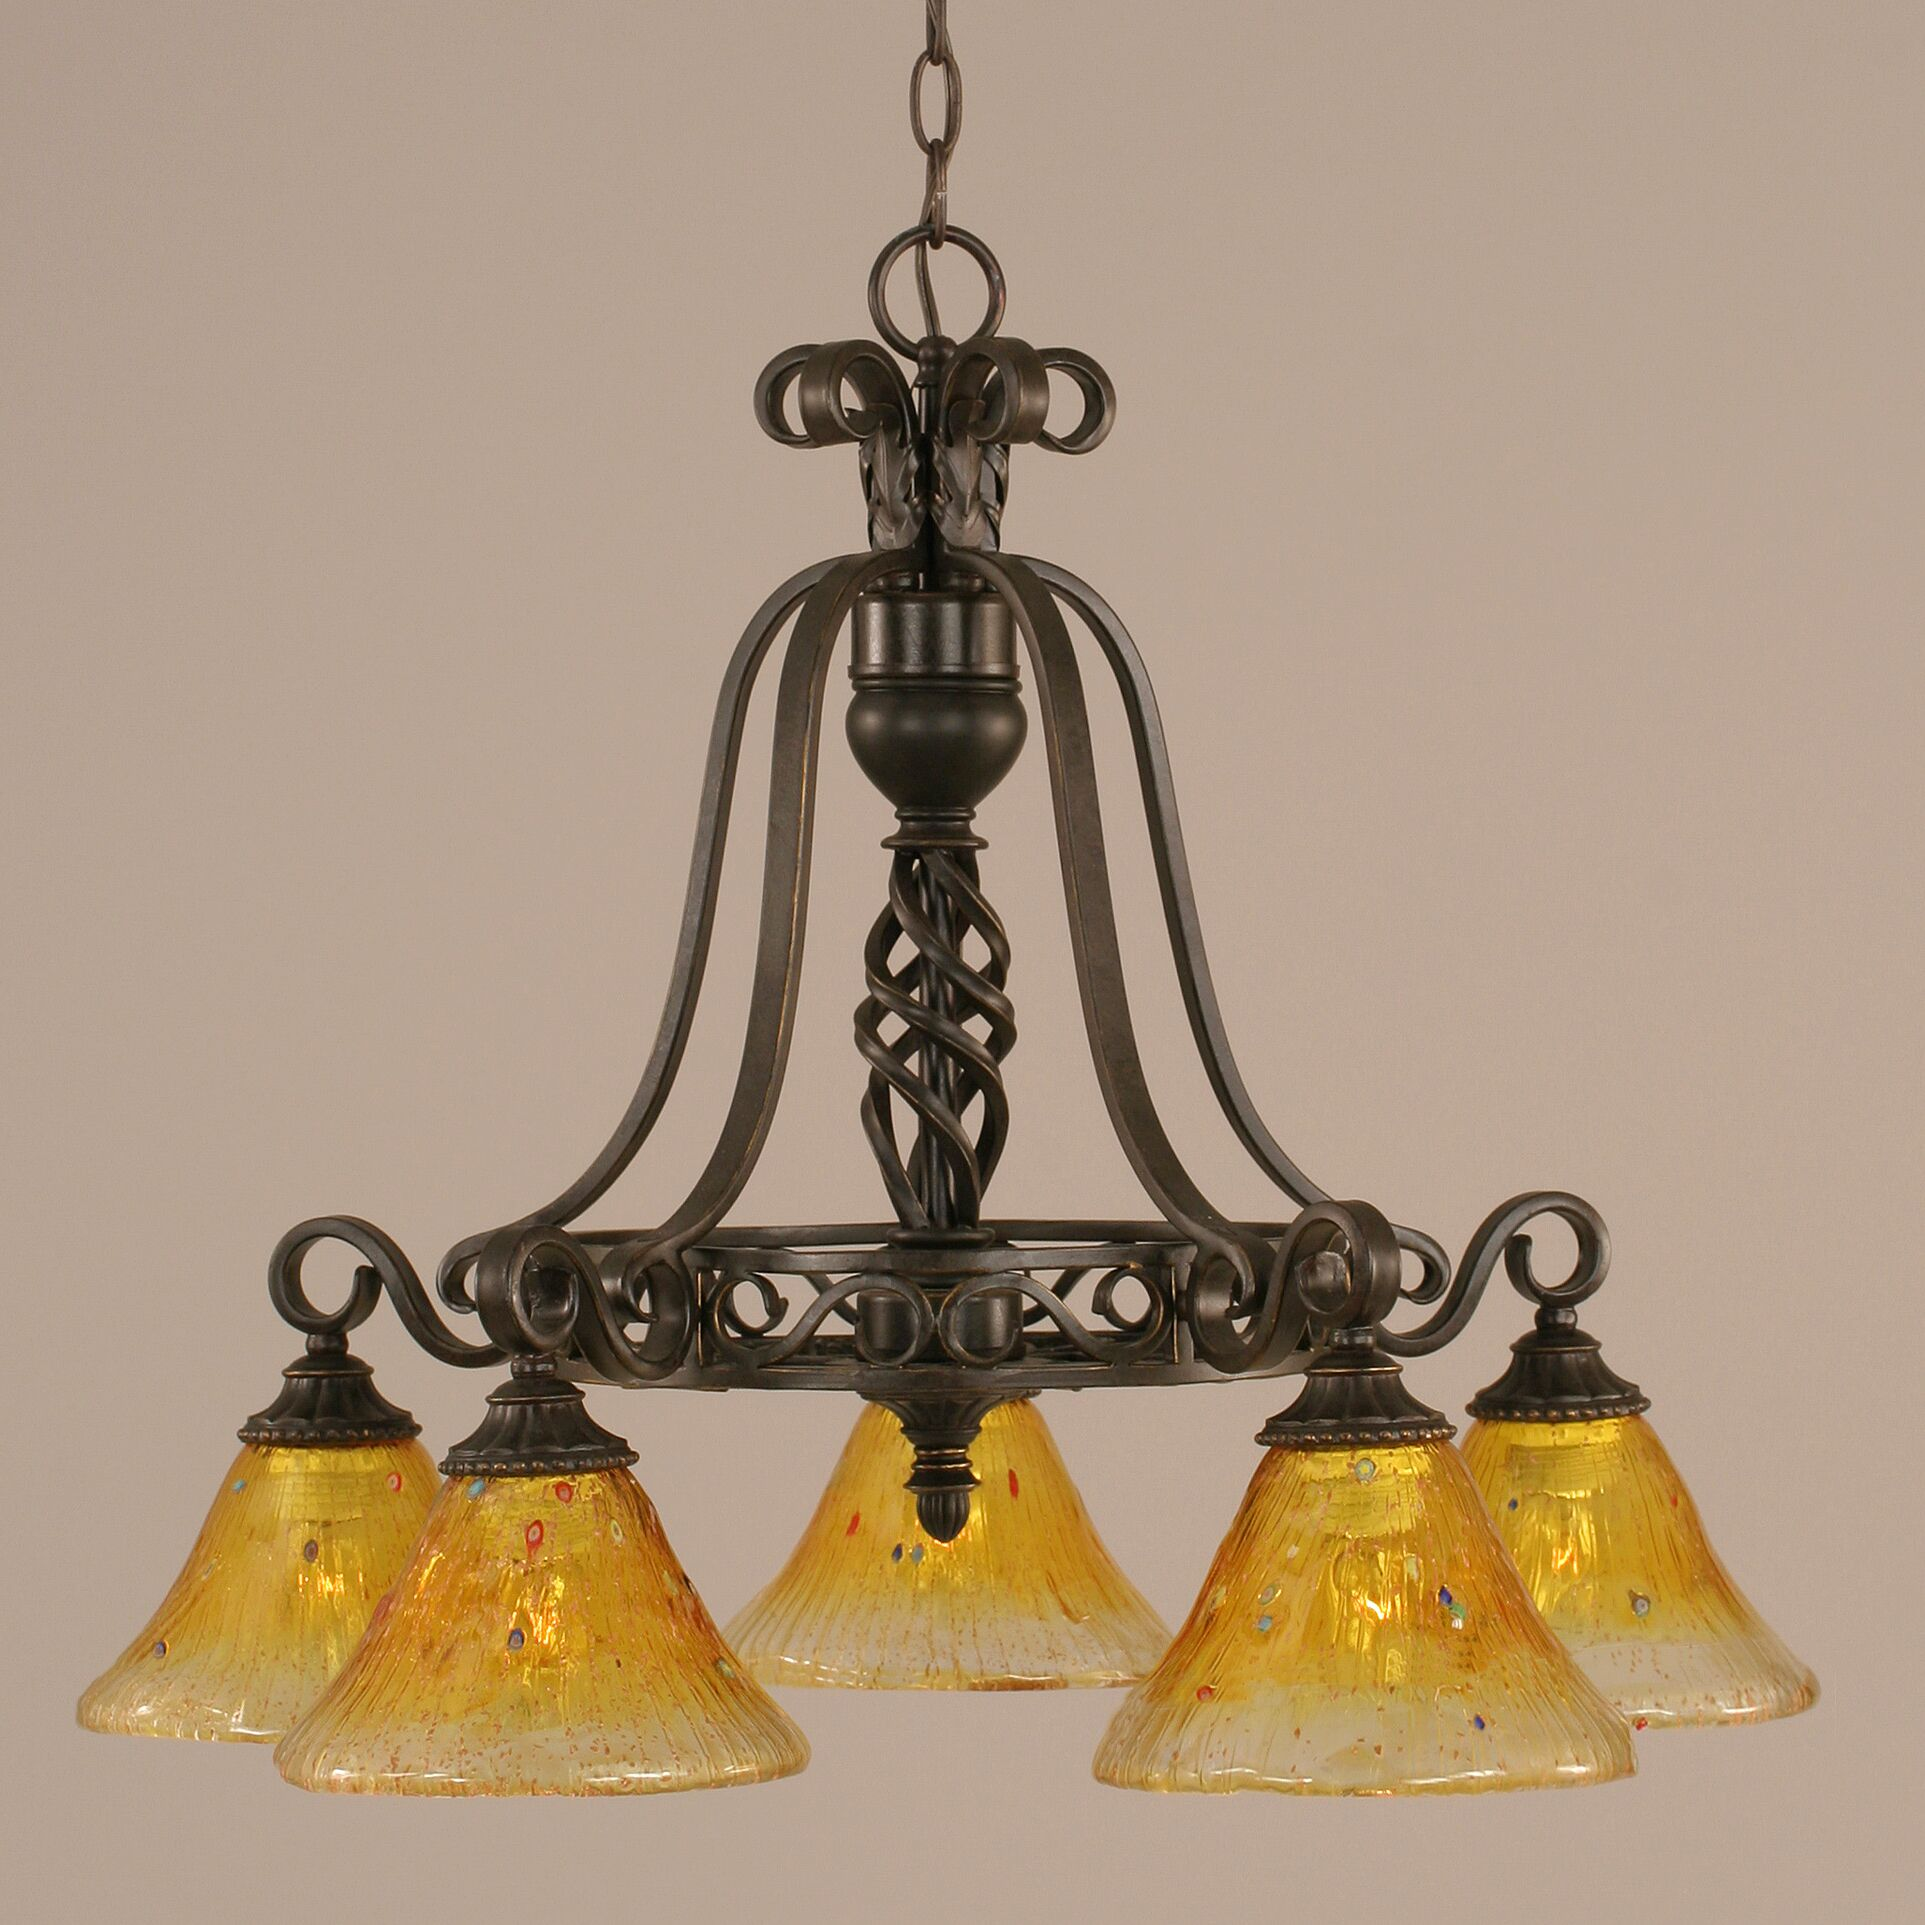 Pierro 5-Light Shaded Chandelier Shade: Gold Champagne Crystal Glass